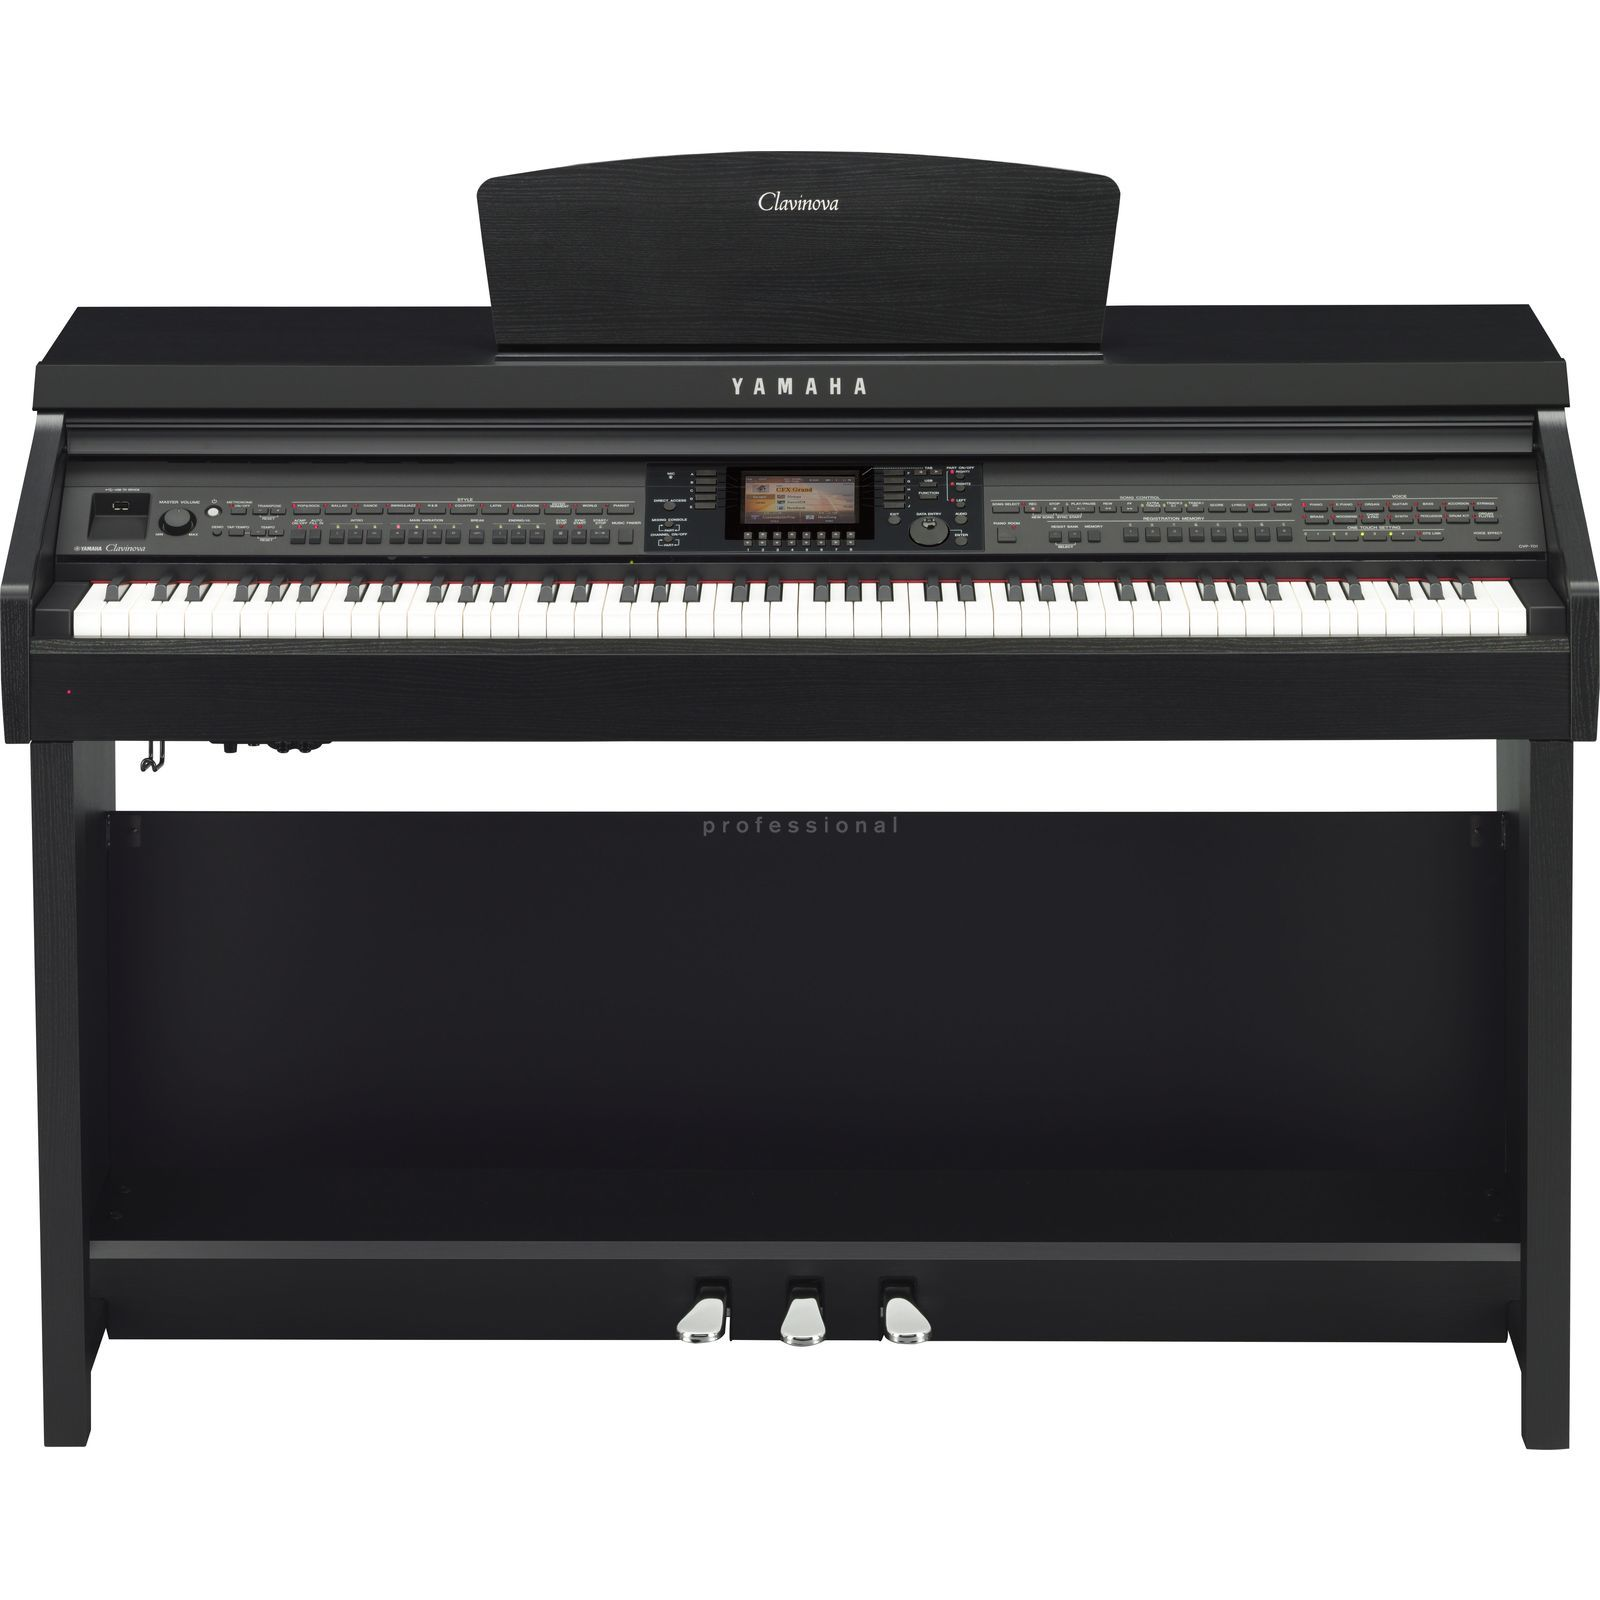 Yamaha CVP 701-B Digital Piano Satin Black Produktbild